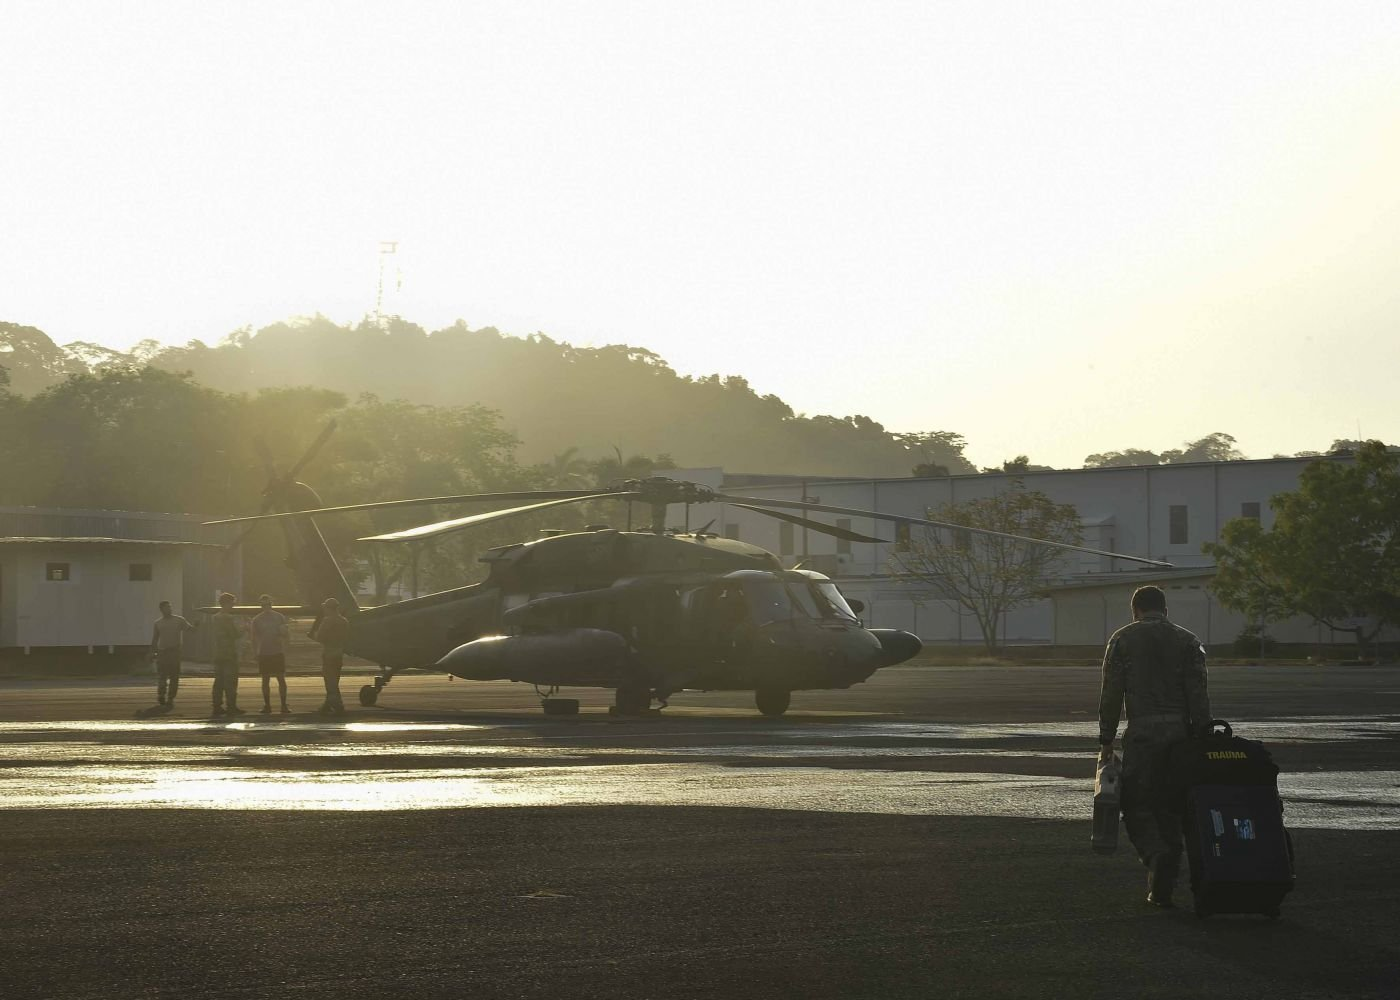 JTF-Bravo Firefighting Ops Wrap up in Panama